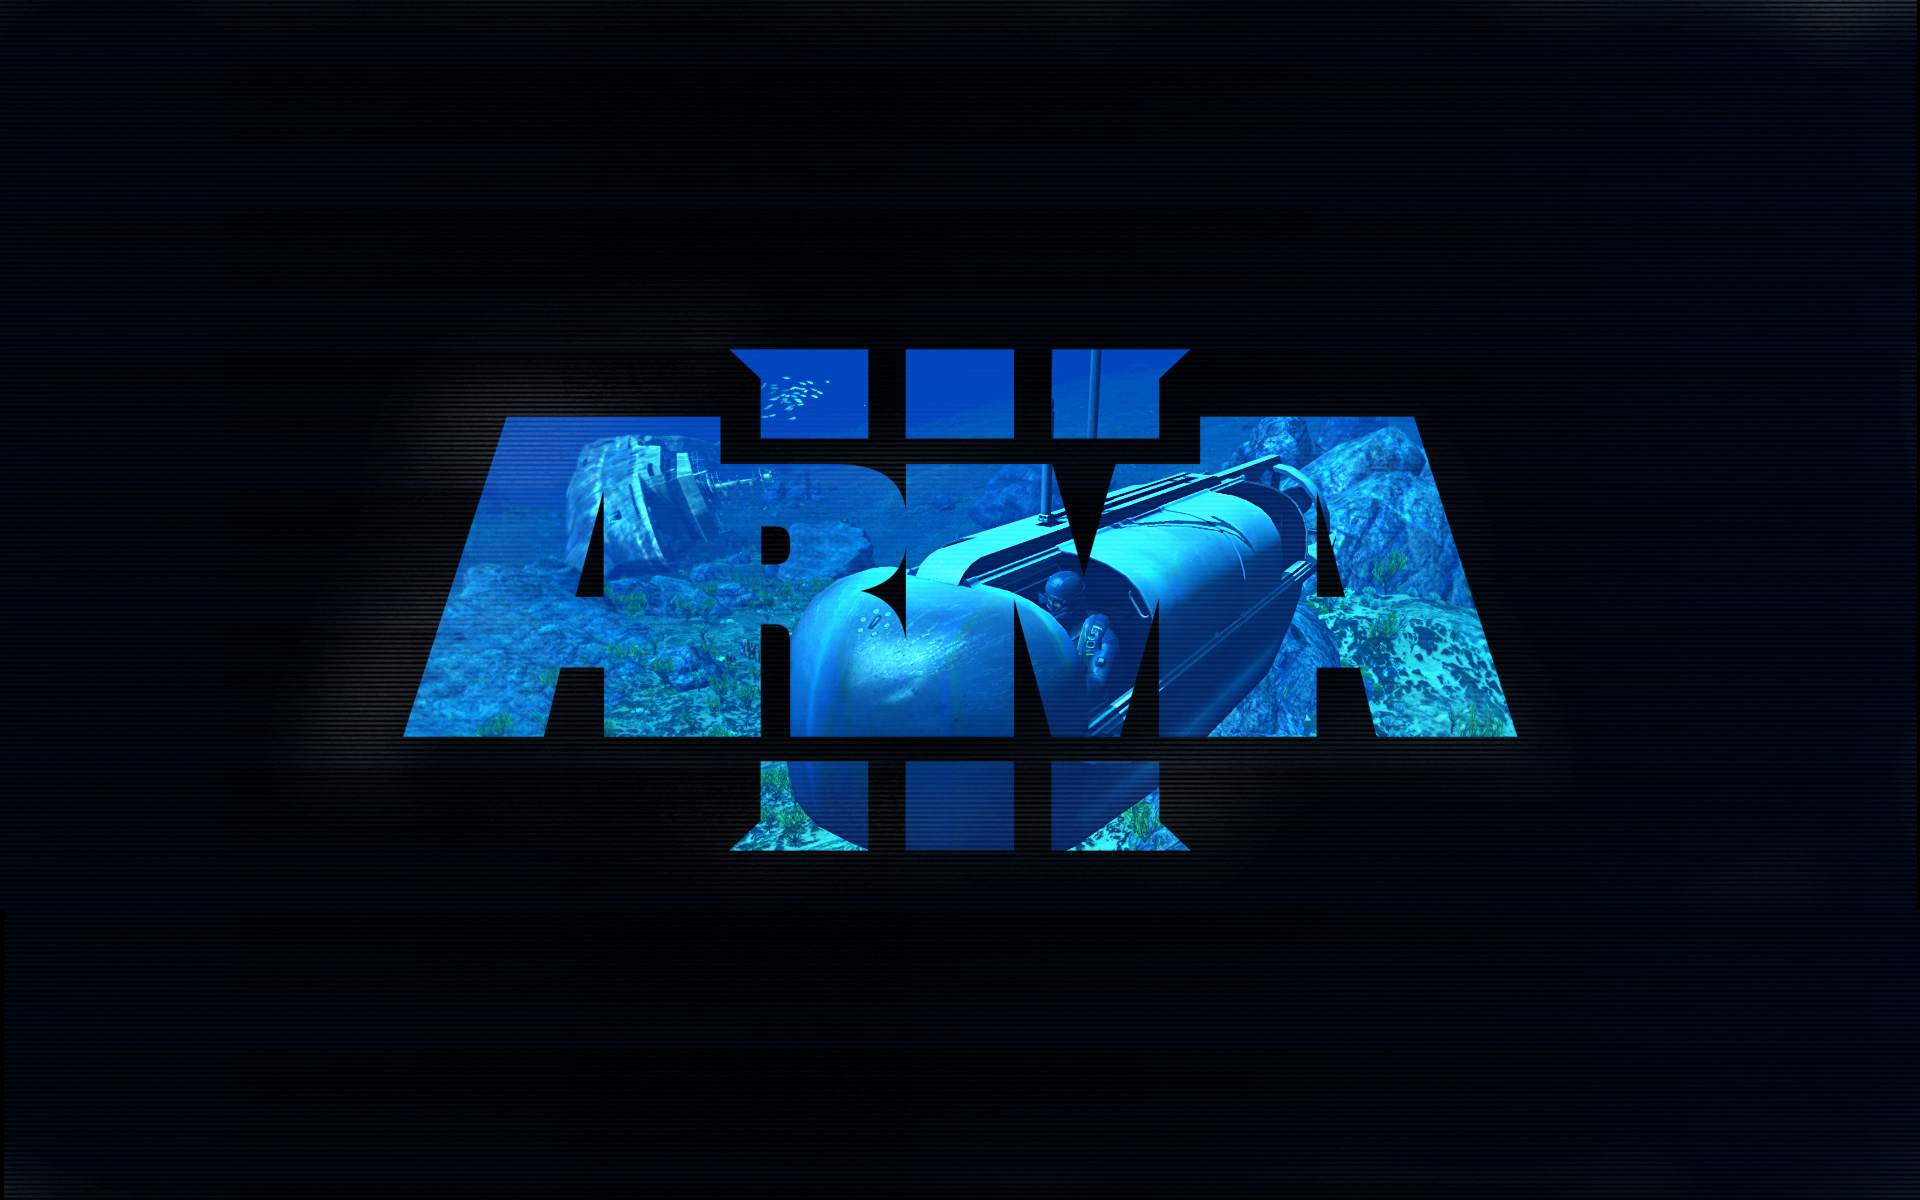 arma 3 wallpapers hd with Arma 3 Wallpaper 28765 on Myst Iv Revelation 30046 moreover Arma 3 Wallpaper 28765 as well Page as well Number 6864 in addition Grunge Textura Met C3 A1lica Acero Metal Textura Metal X 8845.